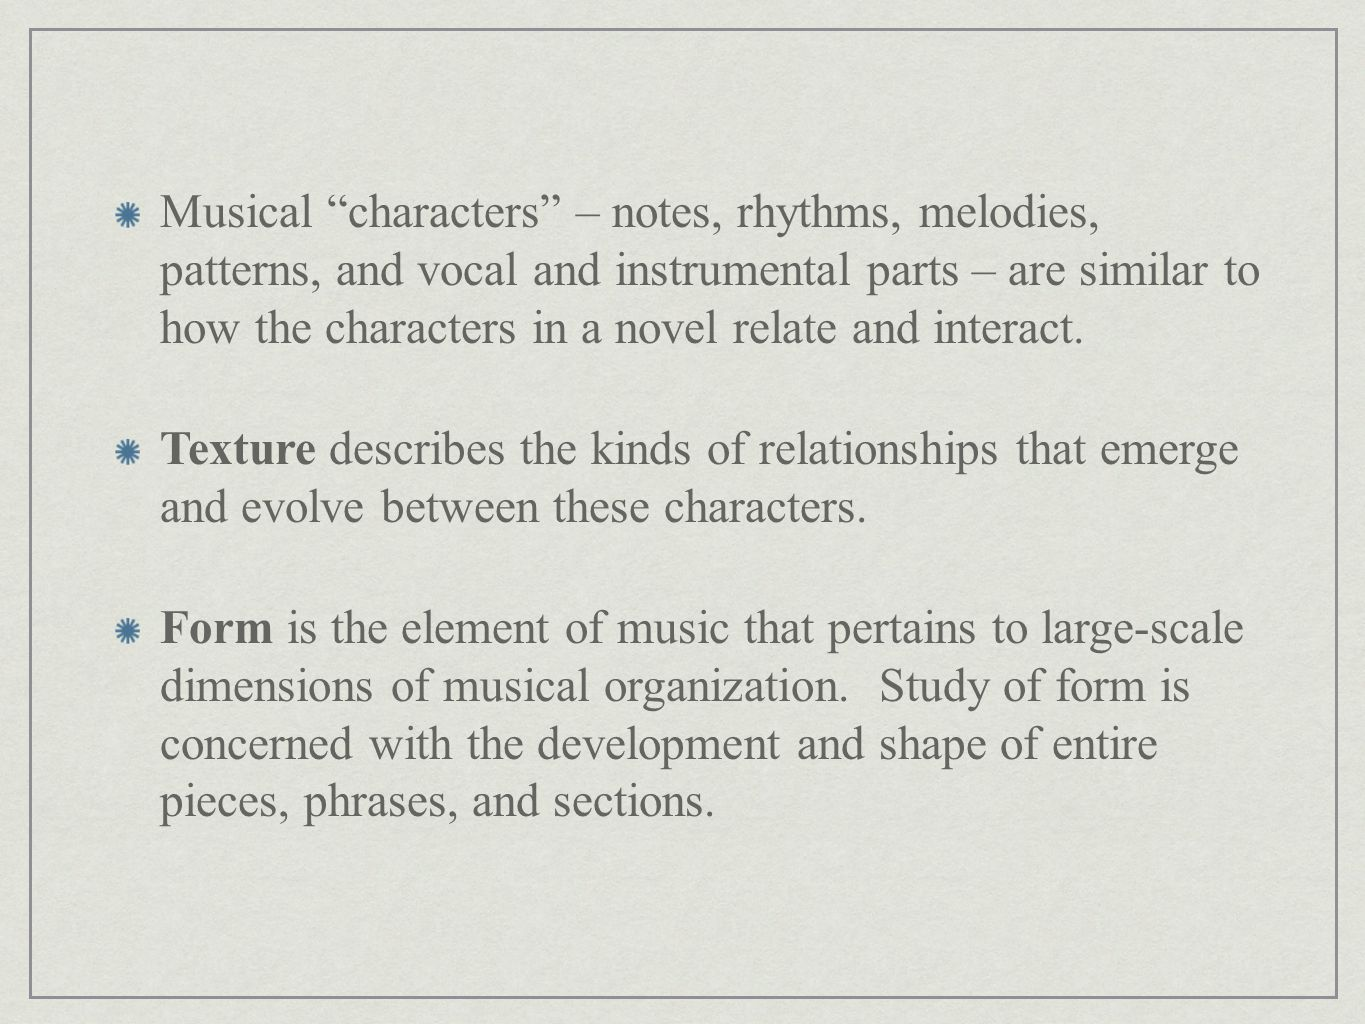 Musical characters – notes, rhythms, melodies, patterns, and vocal and instrumental parts – are similar to how the characters in a novel relate and interact.